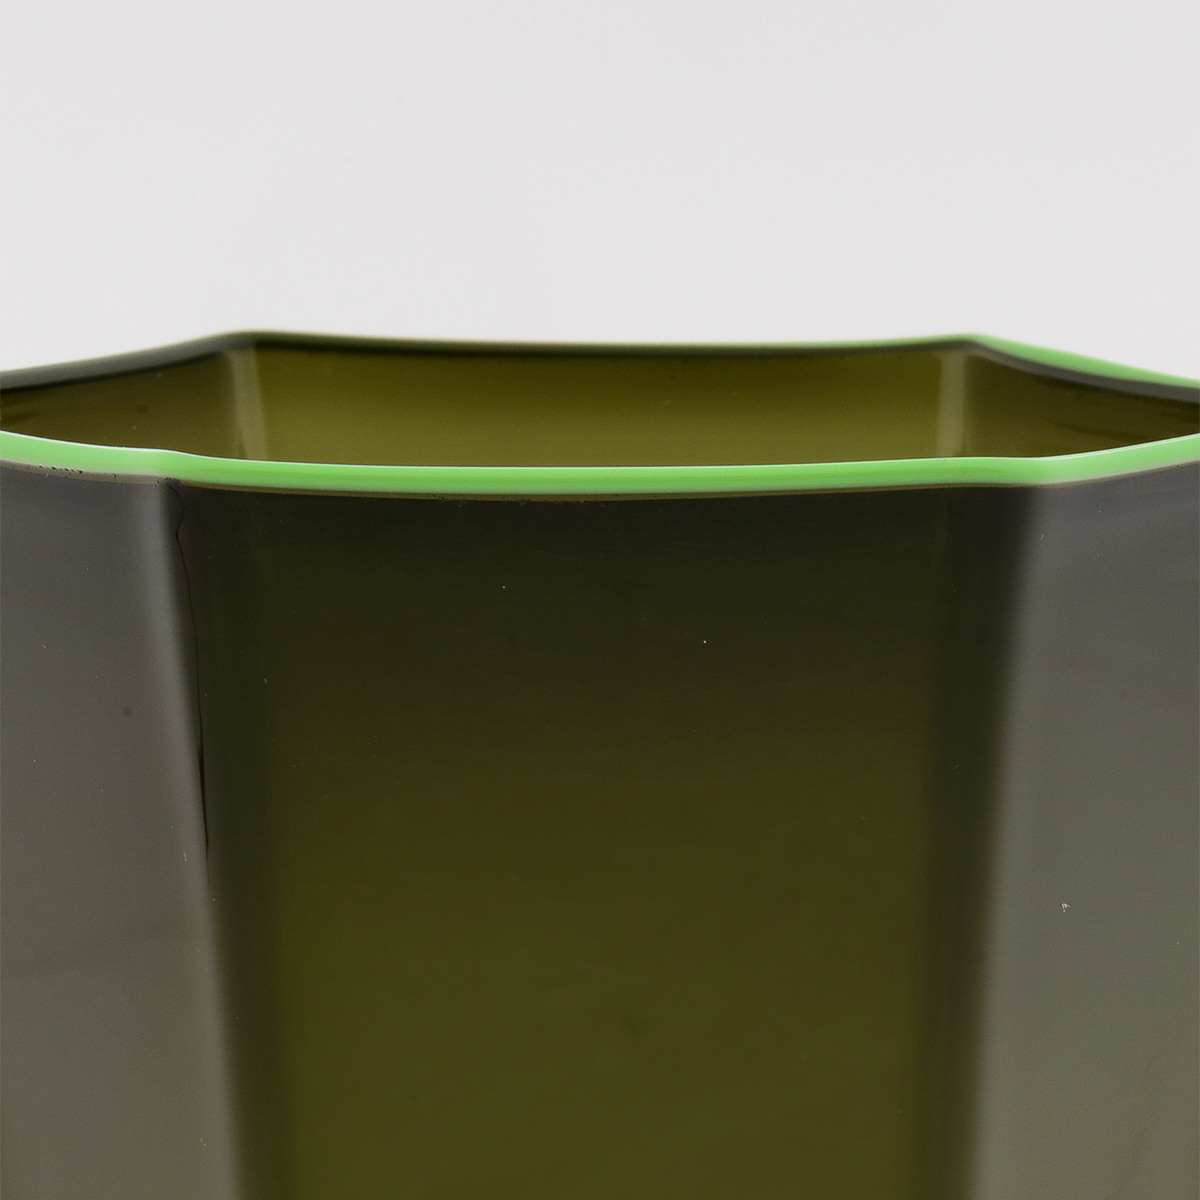 laguna-glass-green-green-rim-giberto-handmade-murano-wine-luxury